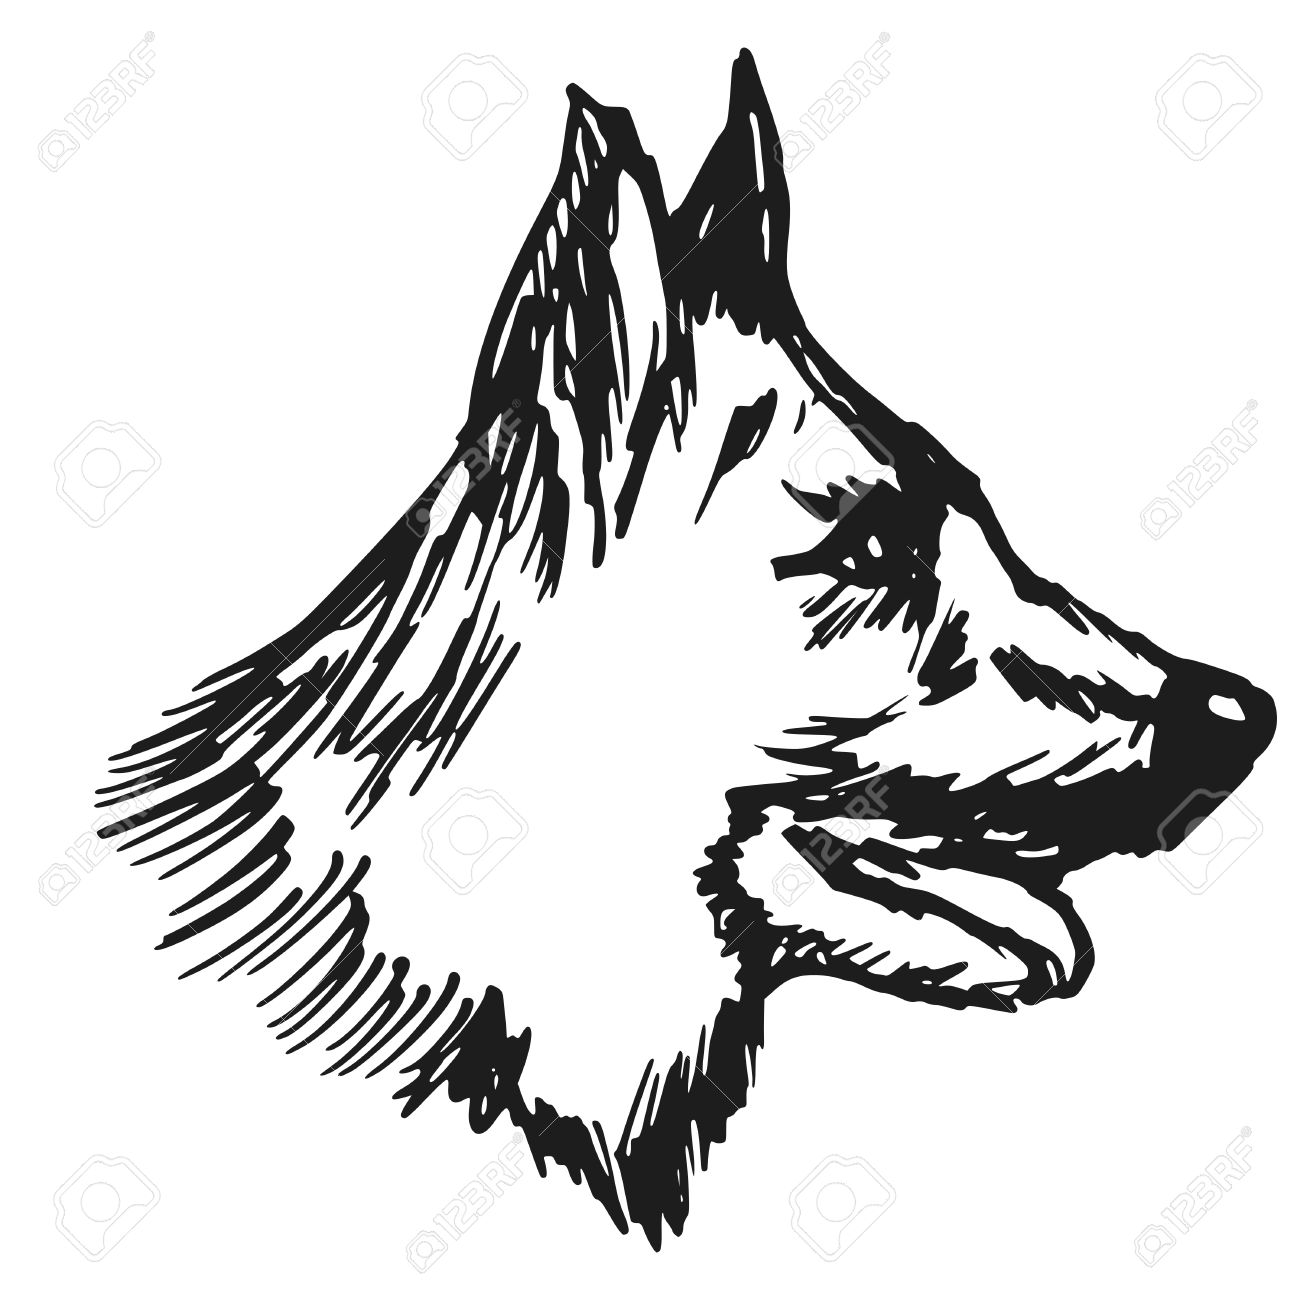 1300x1300 Hand Drawn, Sketch, Cartoon Illustration Of German Shepherd